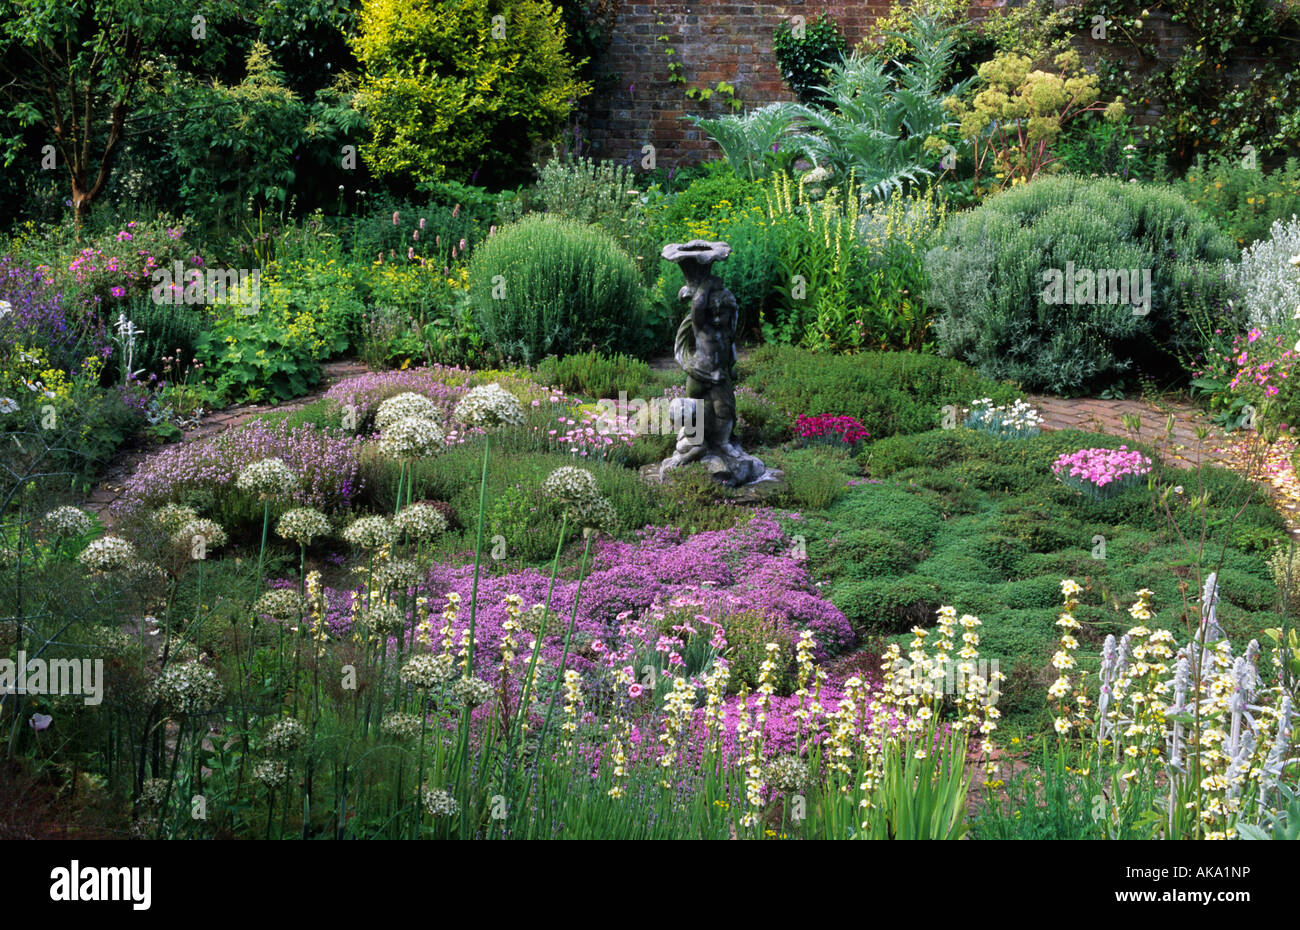 private garden Sussex herb garden with thyme and antique statue sa focal point - Stock Image